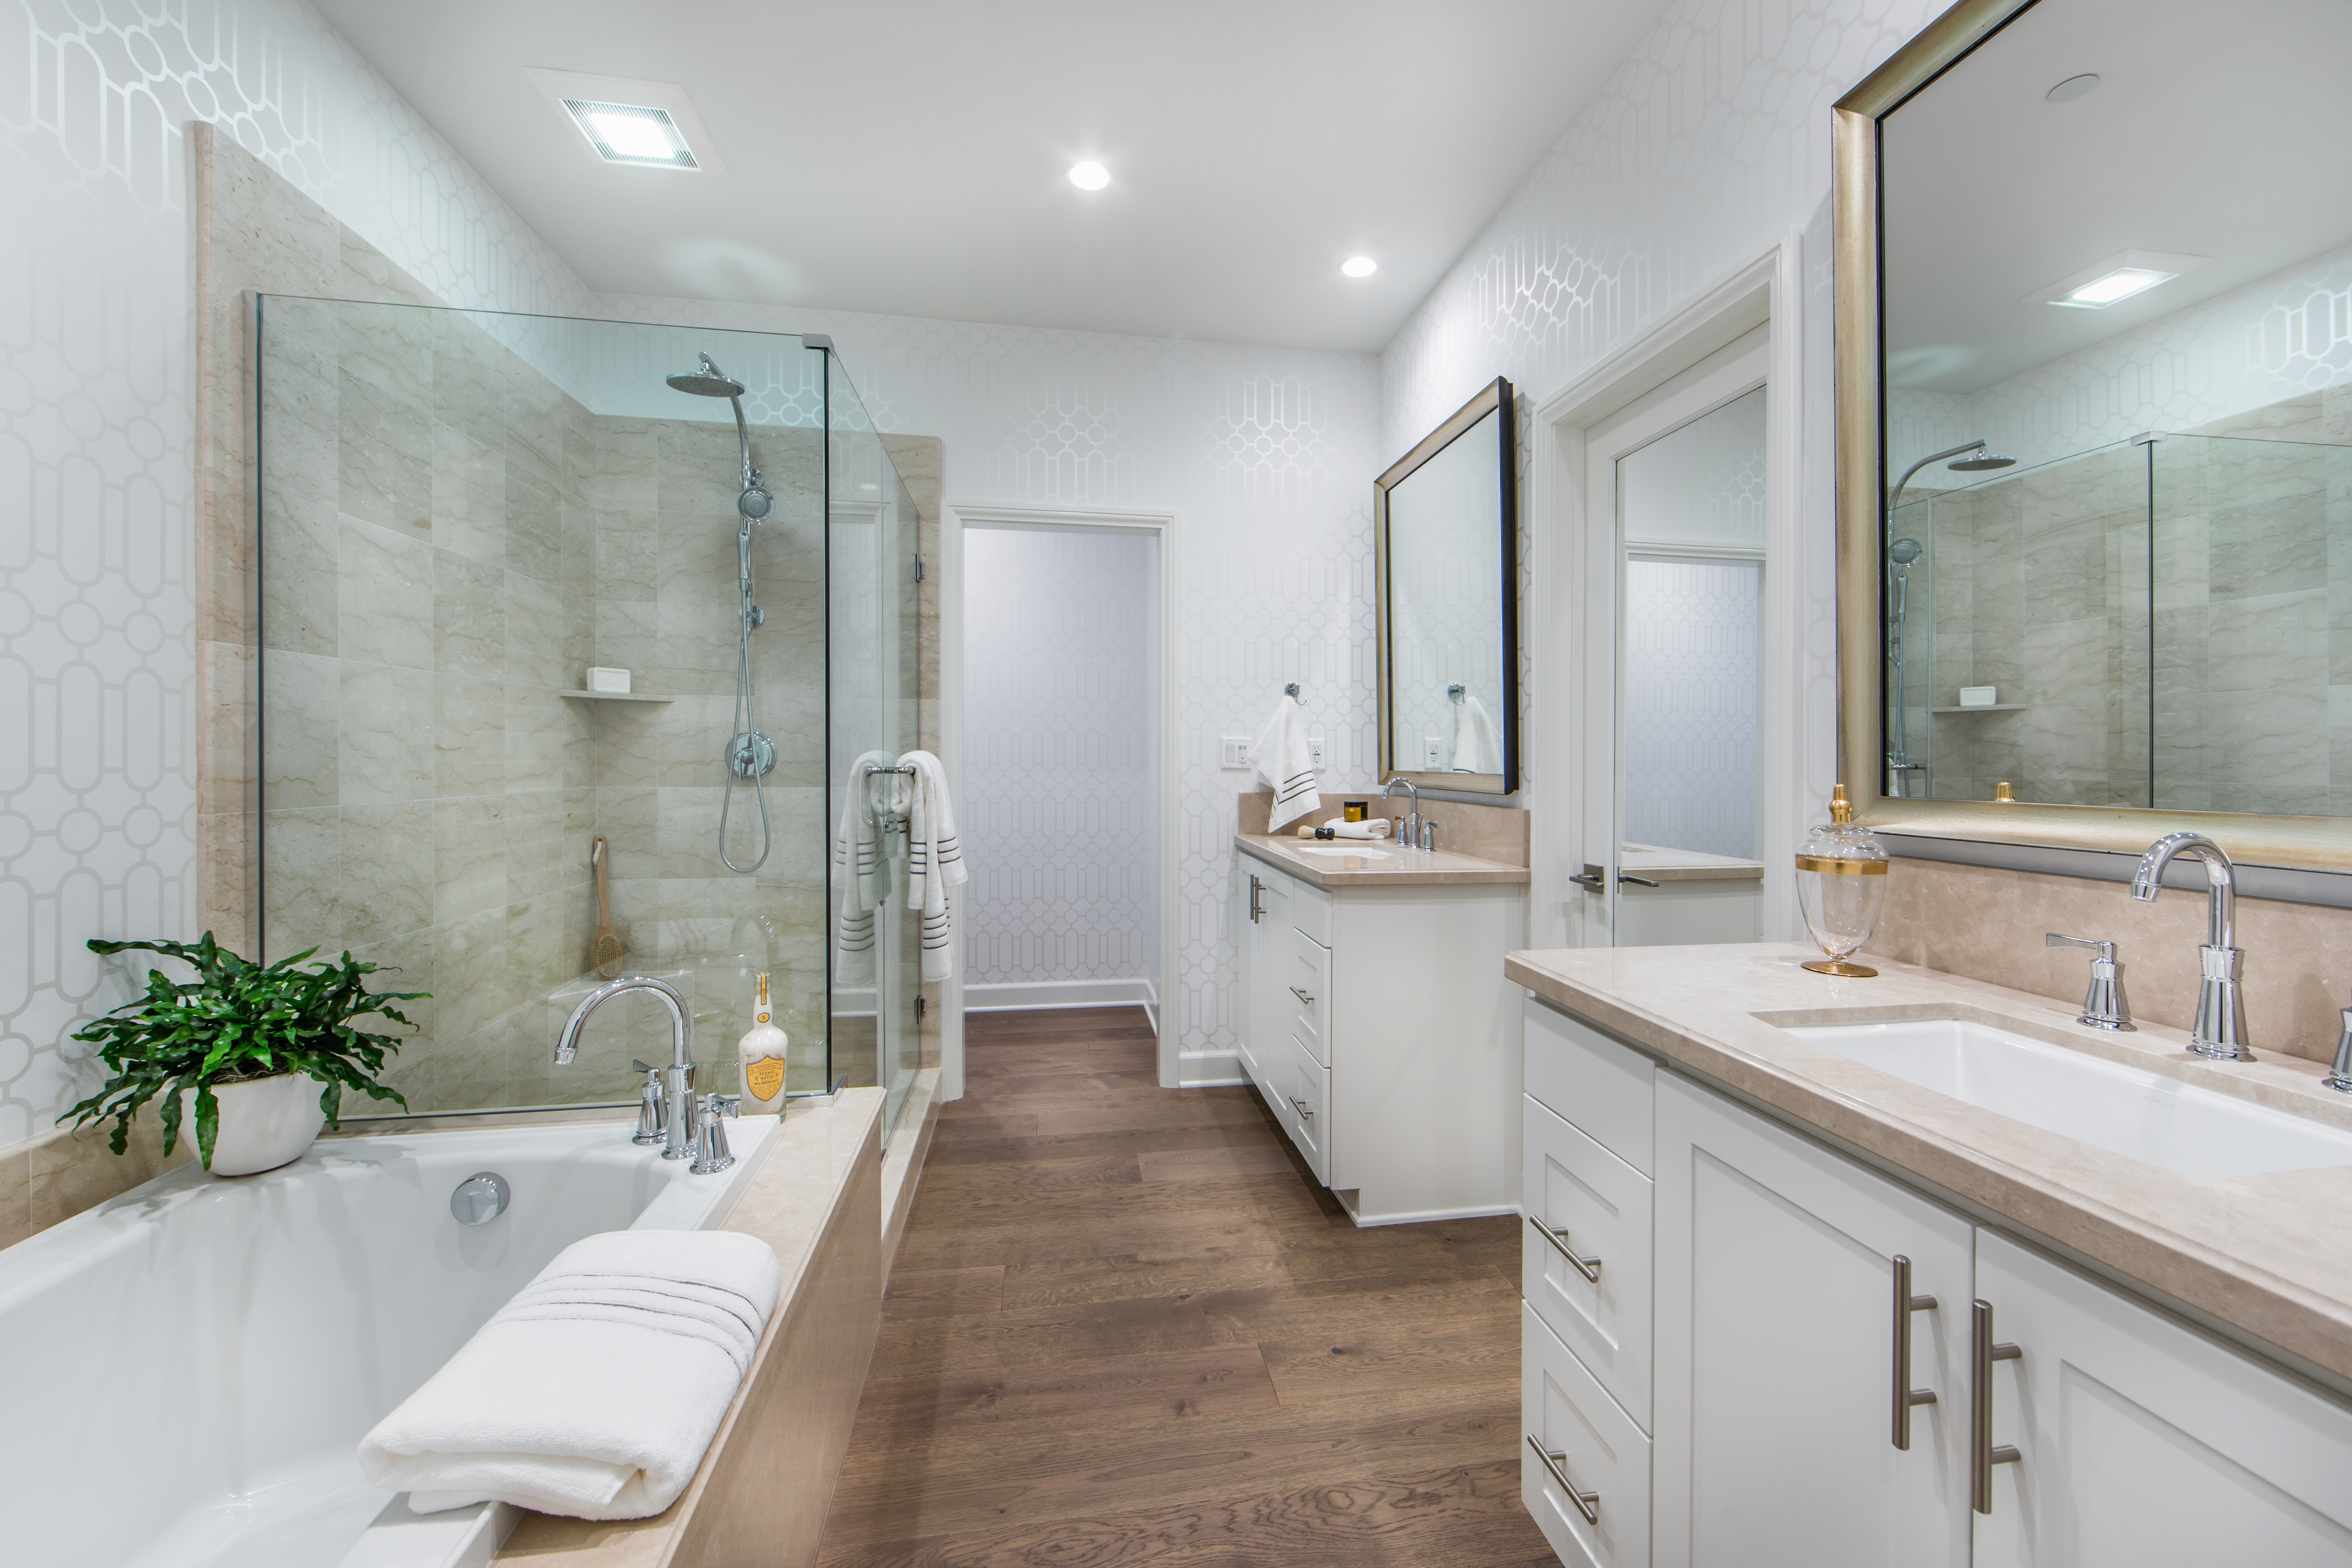 Master Bathroom at Marin Residence 2 in Irvine